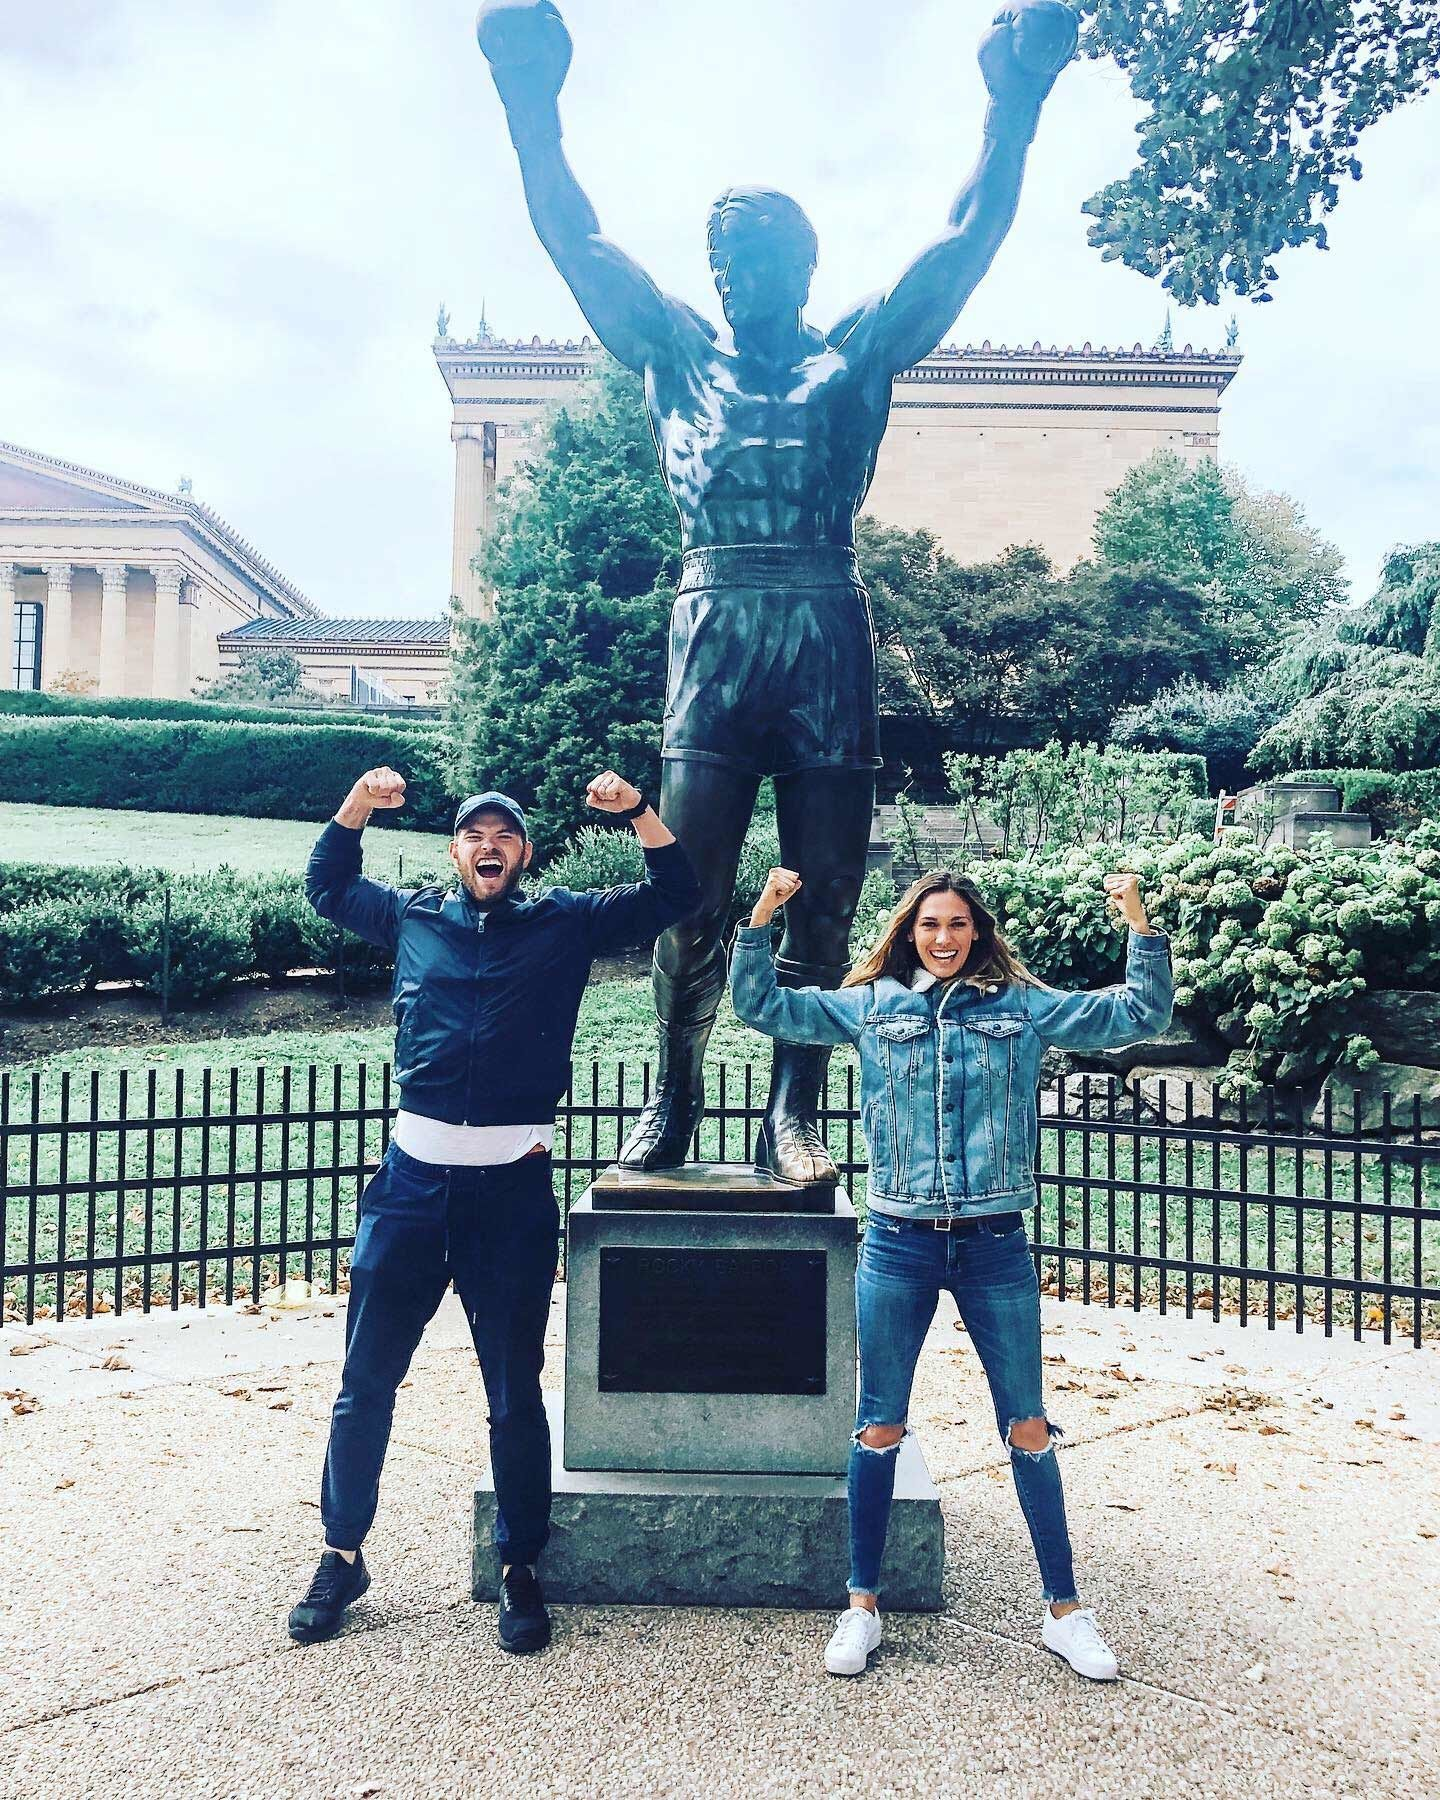 Kellan Lutz and wife in Philadelphia in front of Rocky statue.